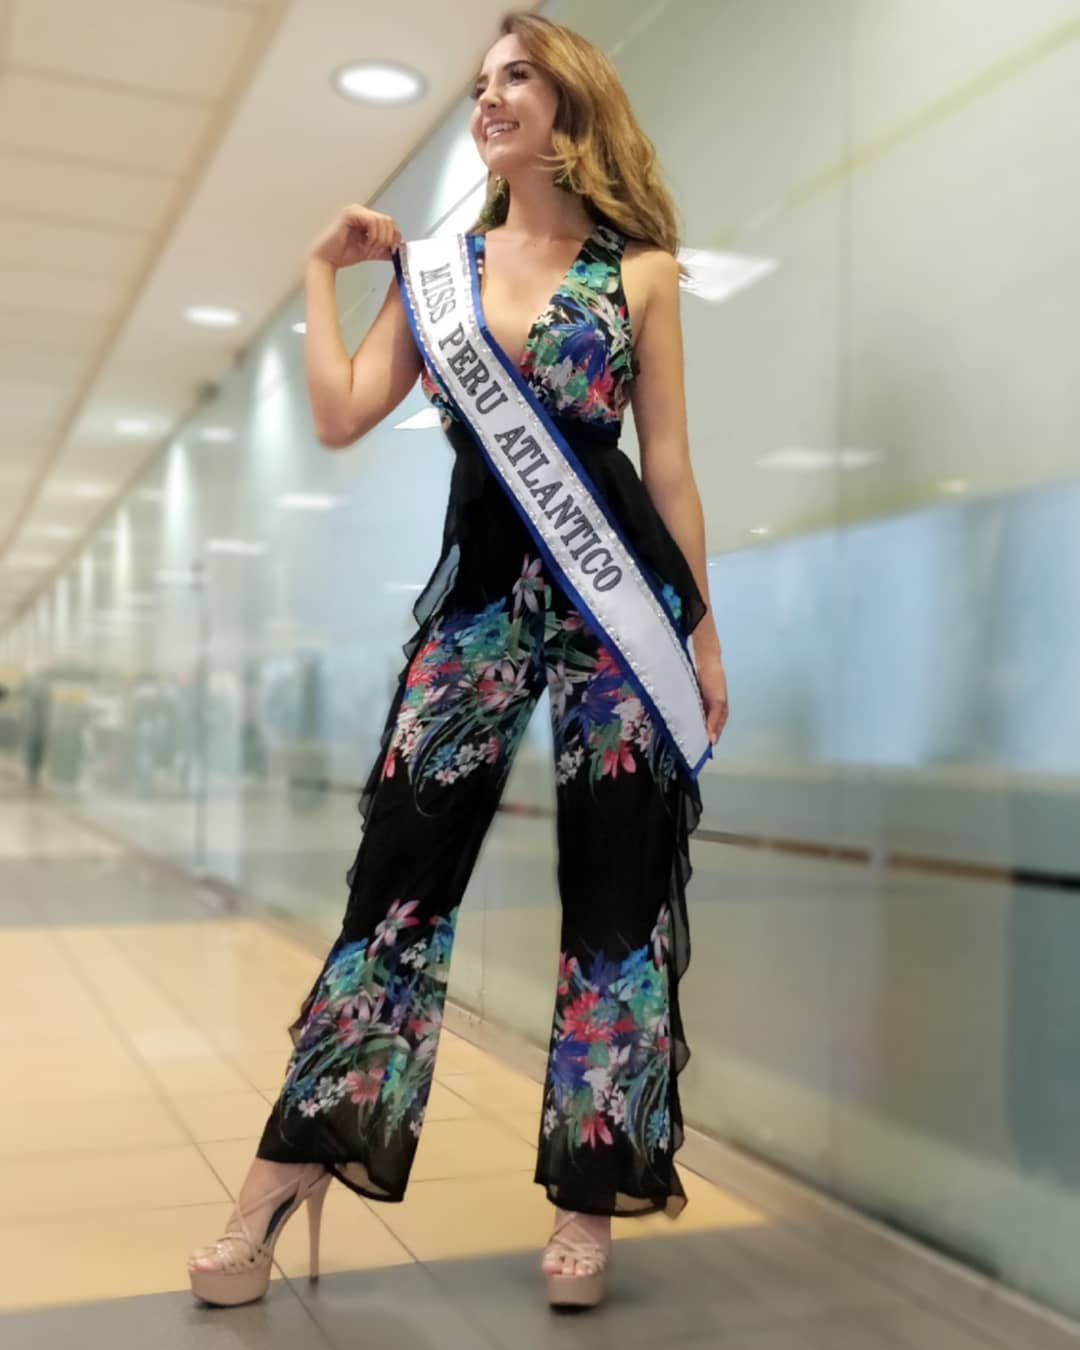 estefania olcese, miss atlantico international 2018. 46795310